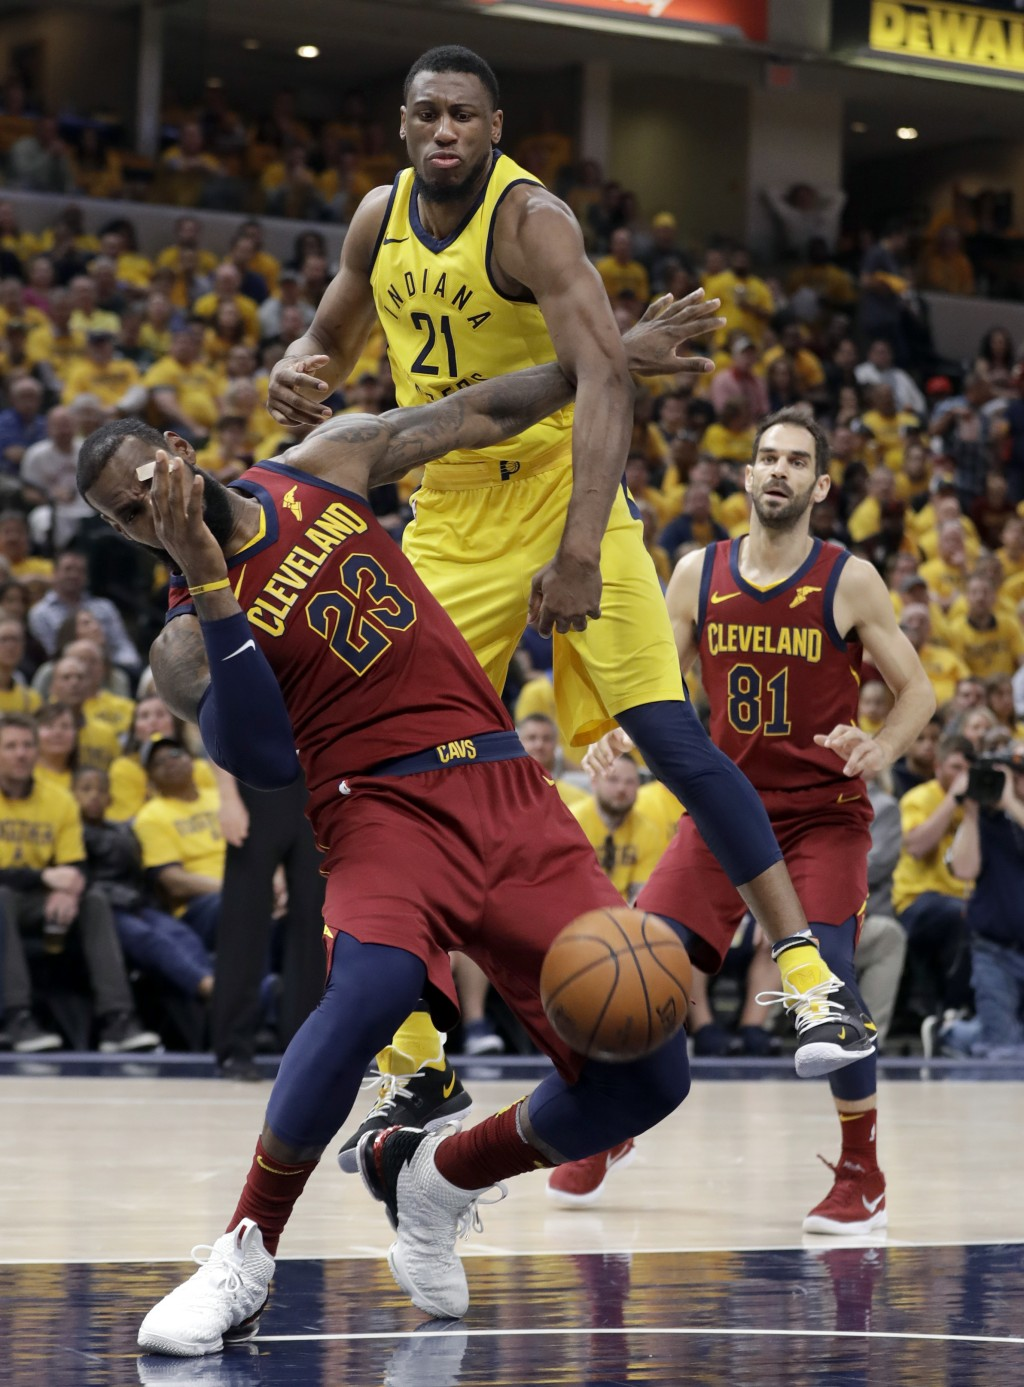 Indiana Pacers' Thaddeus Young (21) and Cleveland Cavaliers' LeBron James (23) collide as Cavaliers' Jose Calderon (81) watches during the second half...